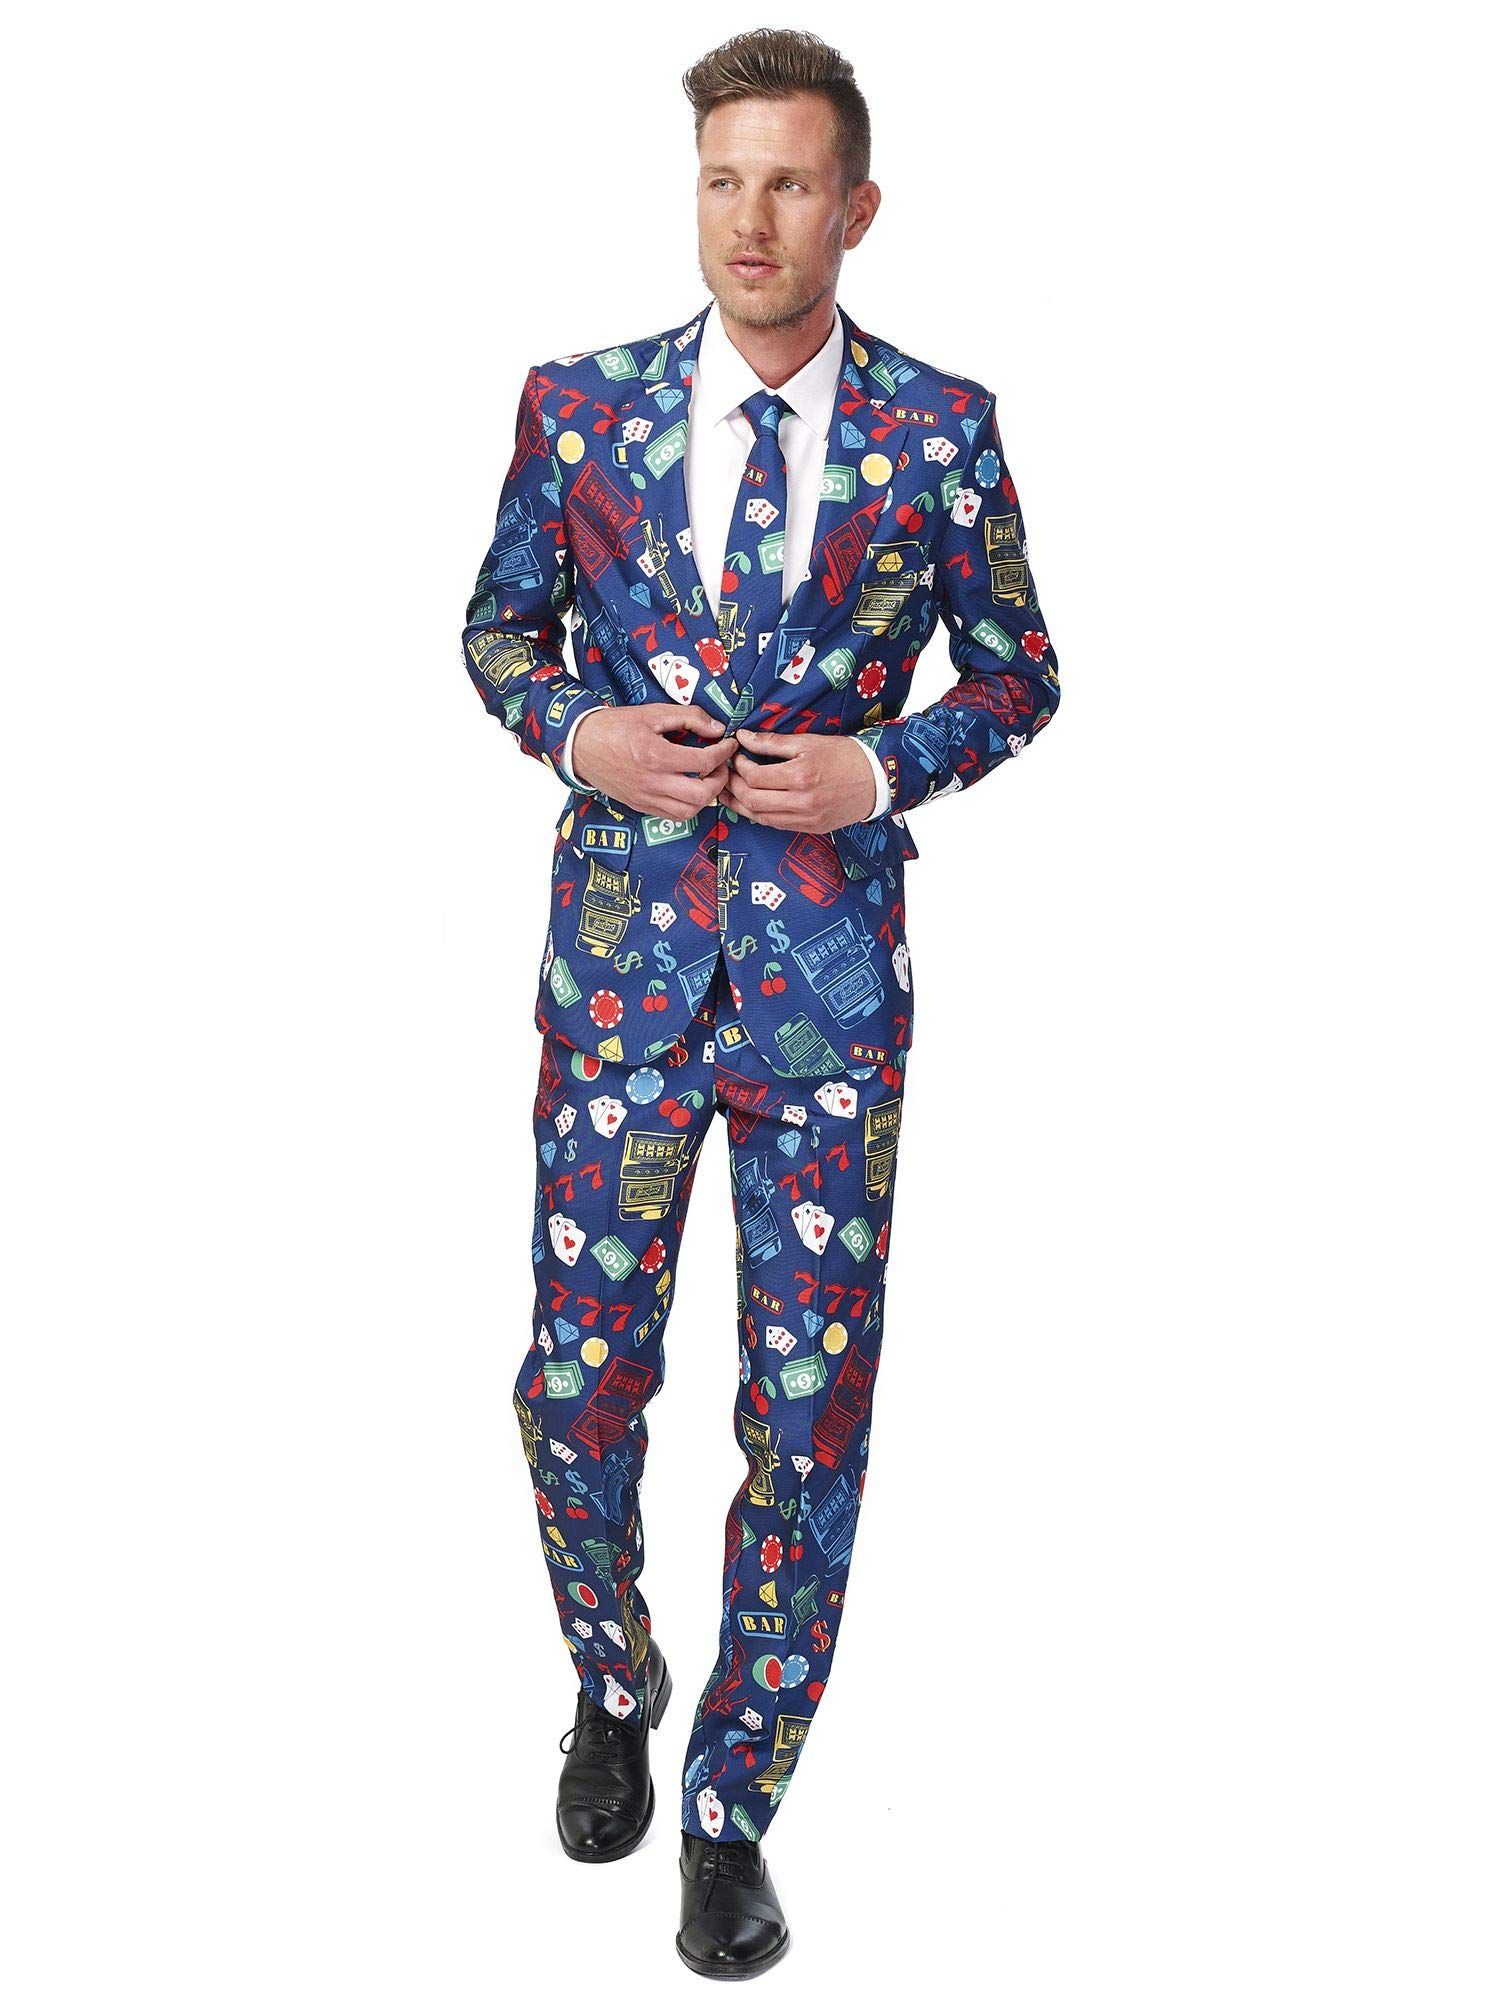 Suitmeister Funny Suits for Men in Different Prints - Comes with Jacket, Pants and Tie with Fun Prints